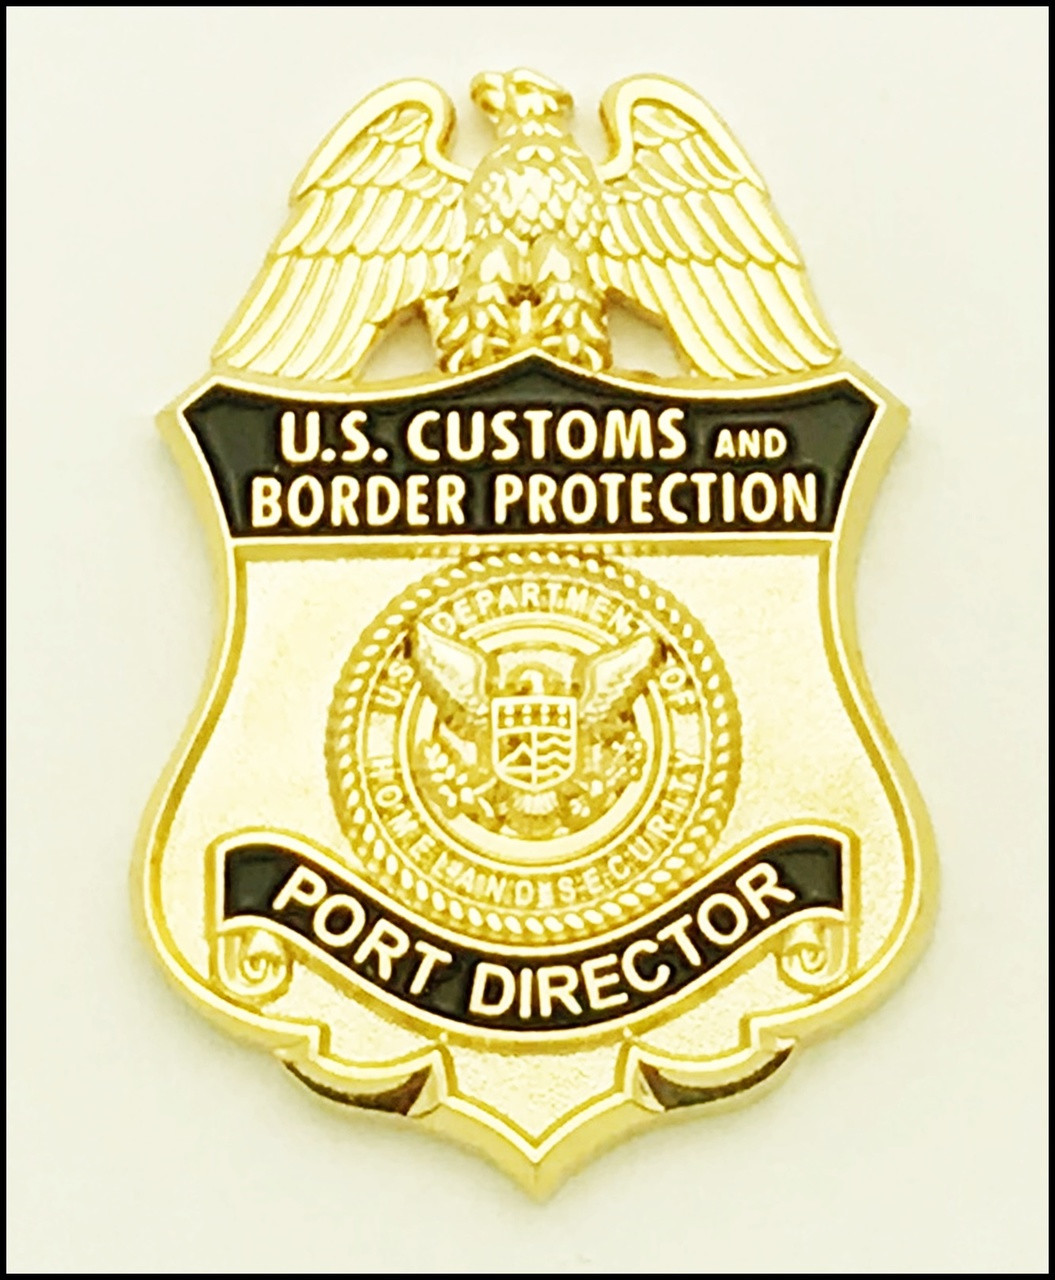 Customs and Border Protection Port Director Mini Badge Magnet